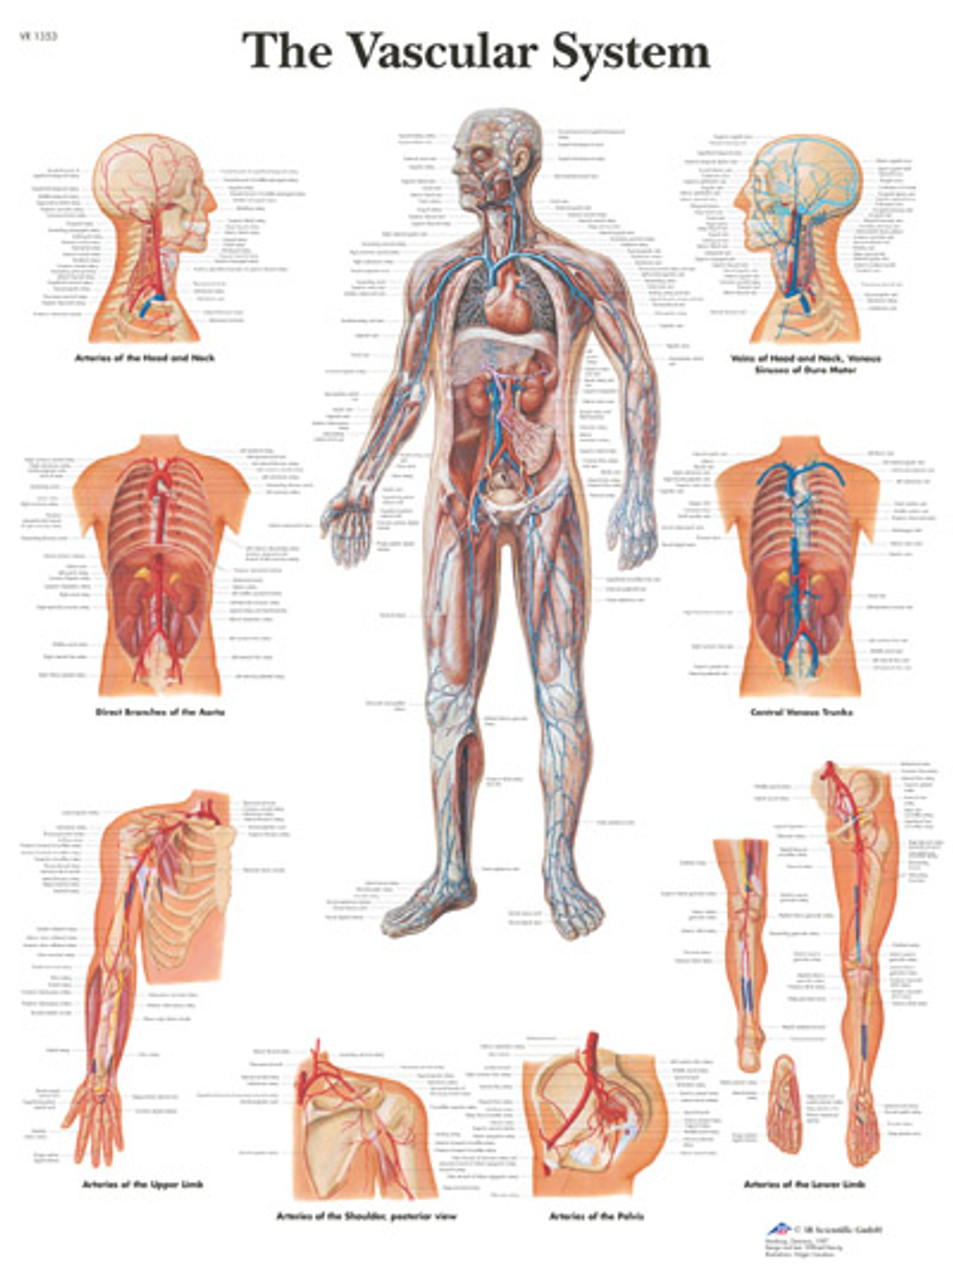 Vascular System Anatomical Poster